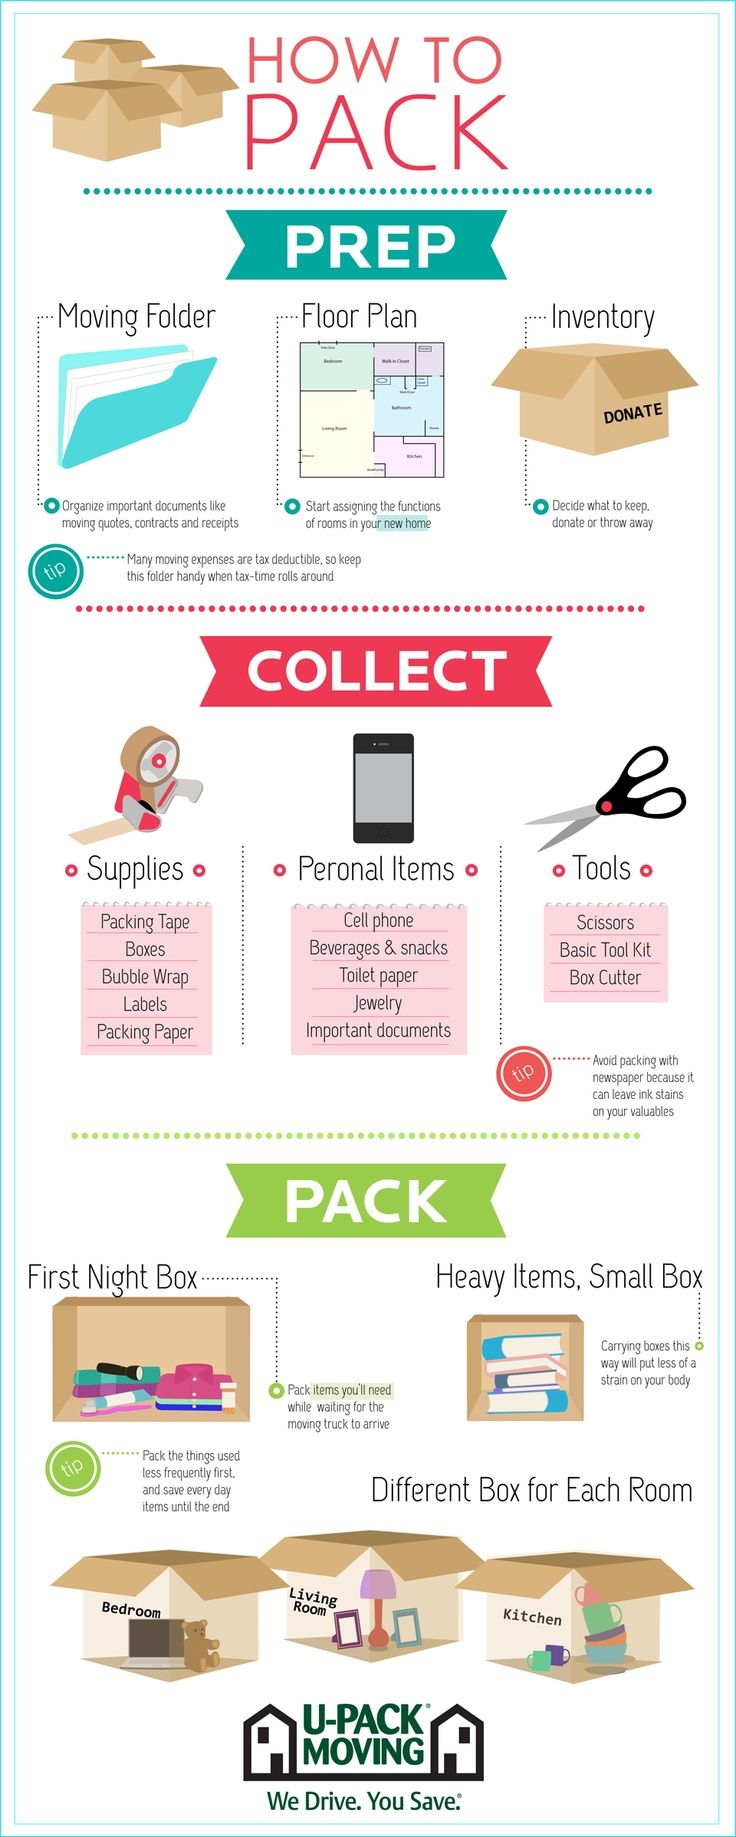 How to Pack | U-Pack